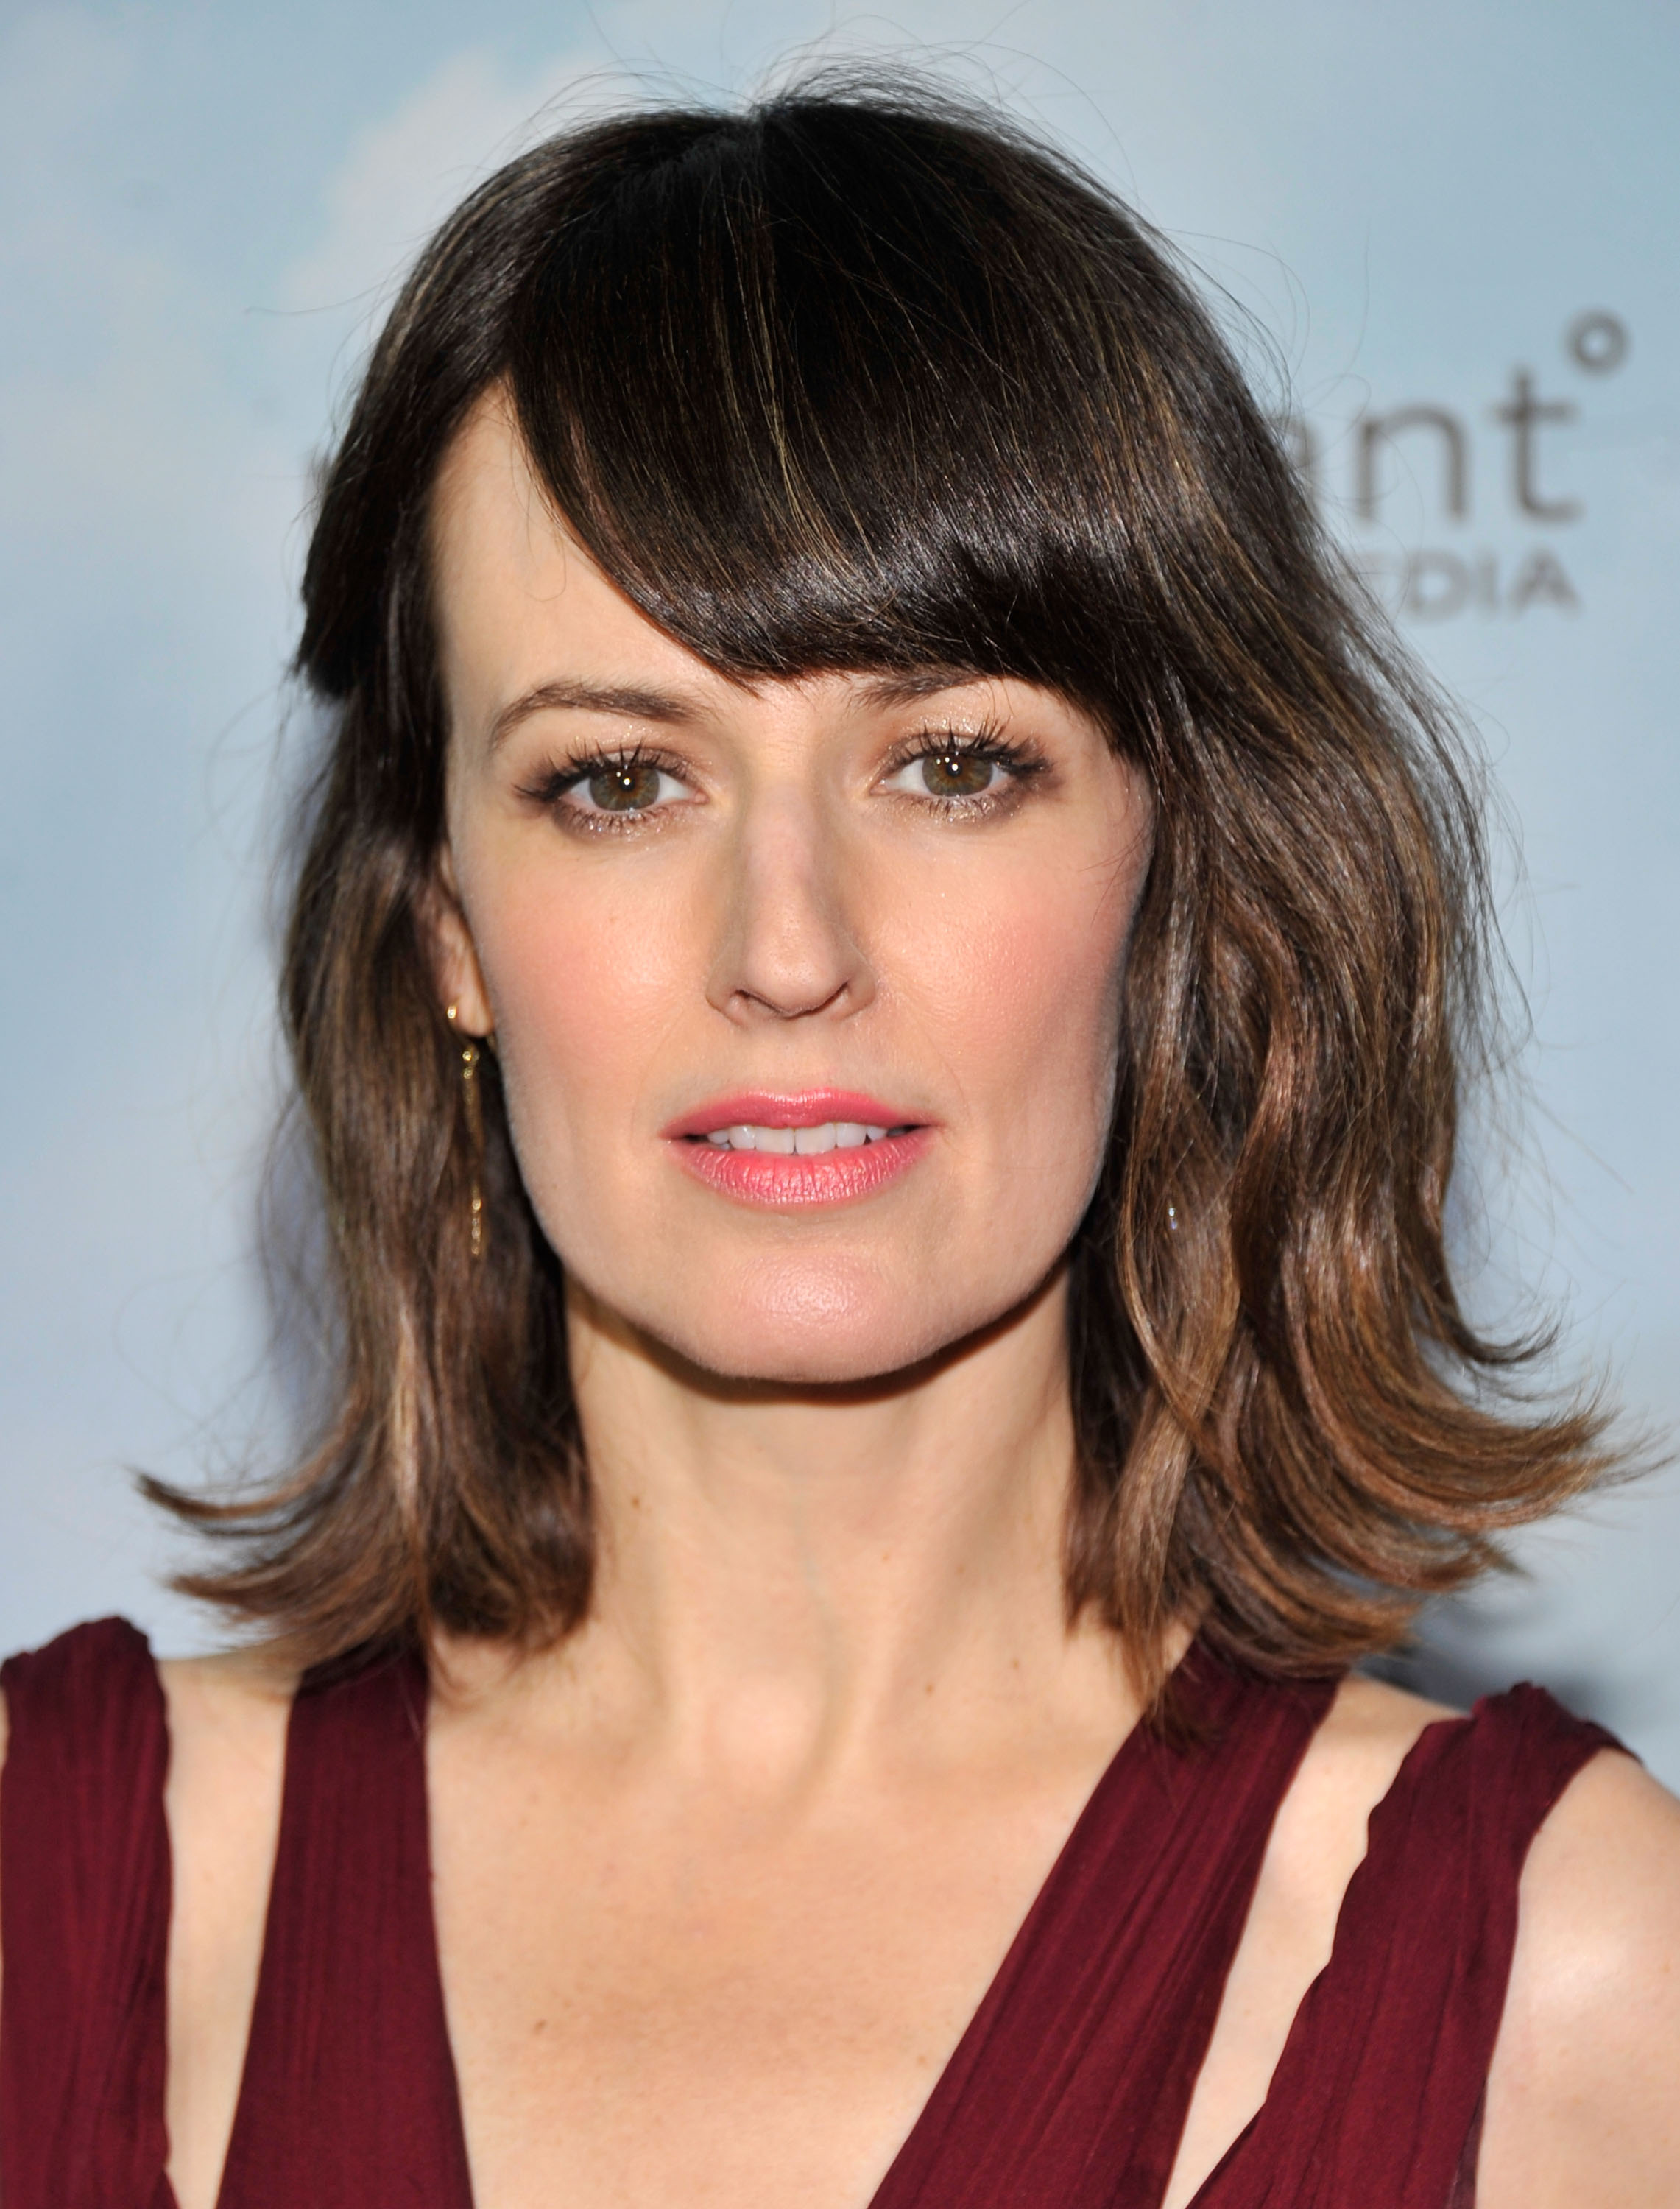 rosemarie dewitt daughterrosemarie dewitt instagram, rosemarie dewitt imdb, rosemarie dewitt profile, rosemarie dewitt ron livingston, rosemarie dewitt, rosemarie dewitt daughter, rosemarie dewitt movies, rosemarie dewitt nudography, rosemarie dewitt net worth, rosemarie dewitt nose, rosemarie dewitt the watch, rosemarie dewitt wikifeet